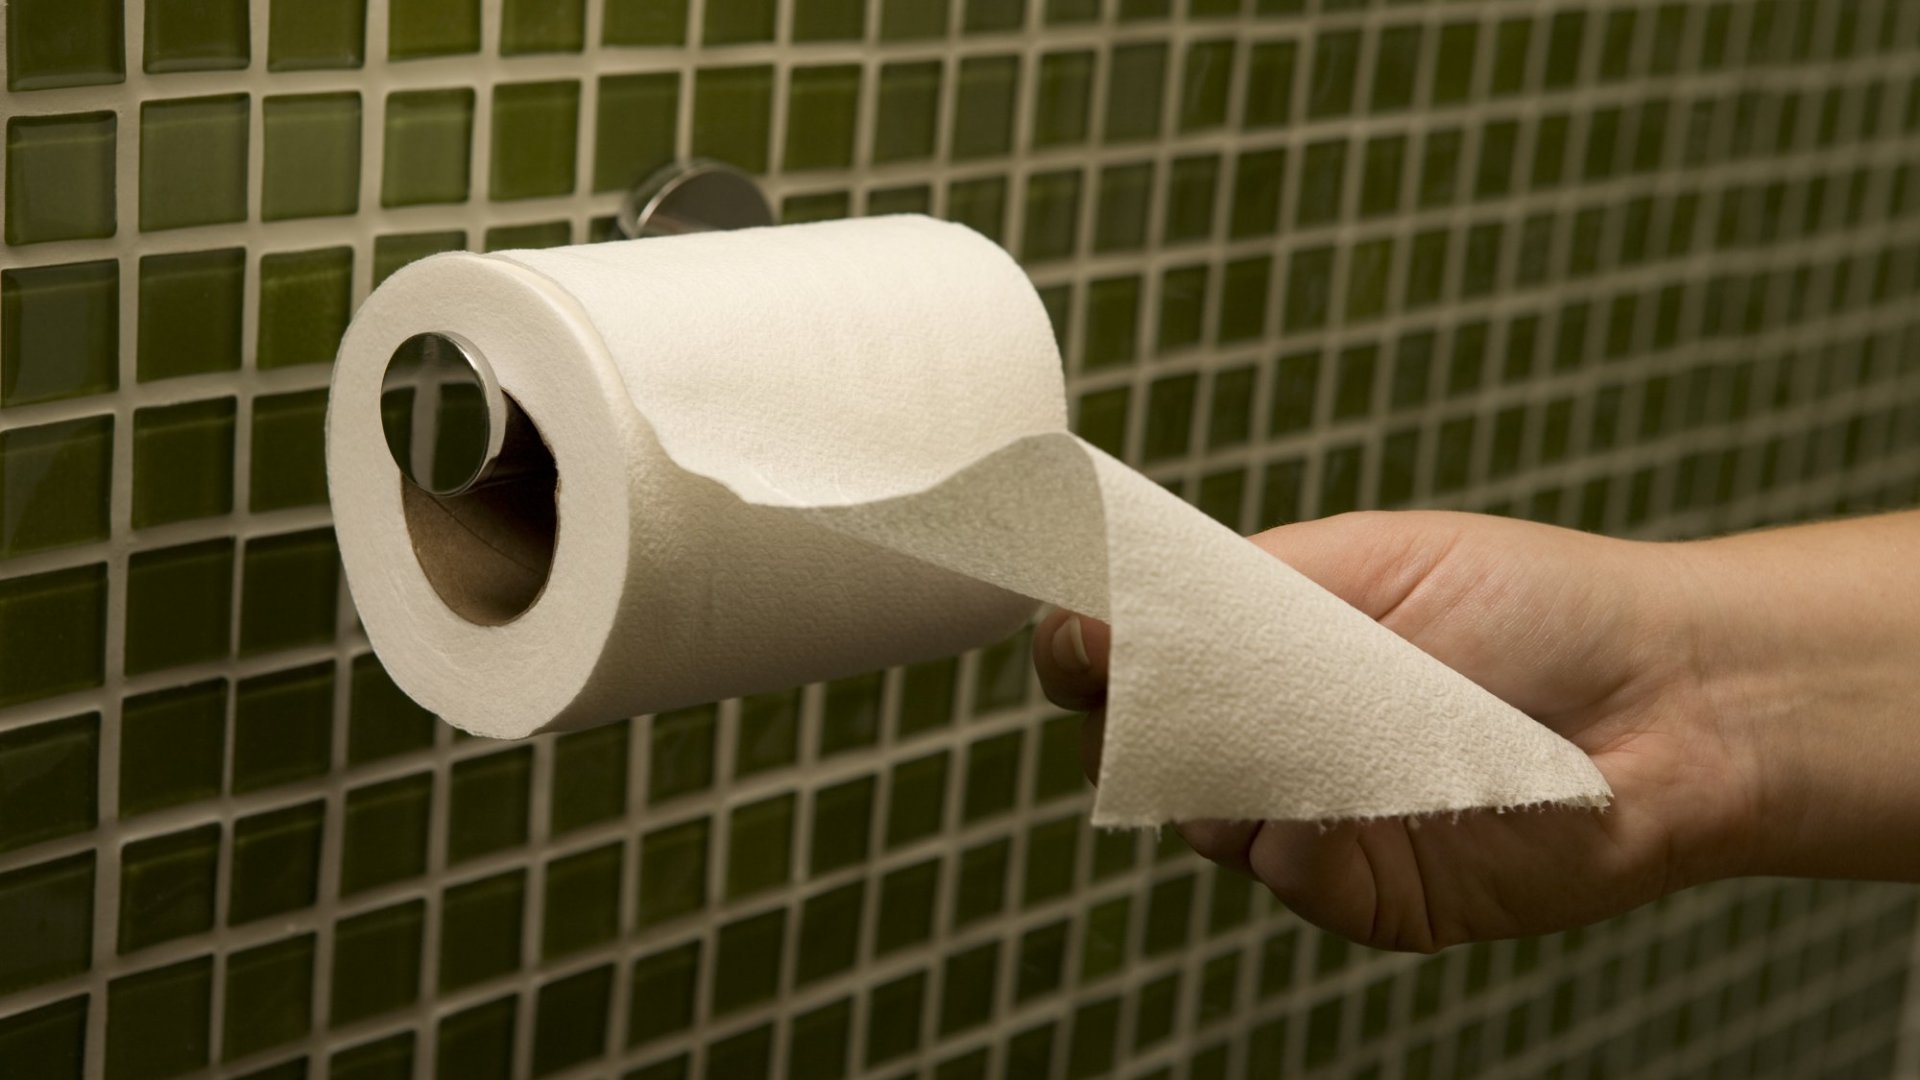 The Correct Way to Hang Toilet Paper, According to Science   Inc.com